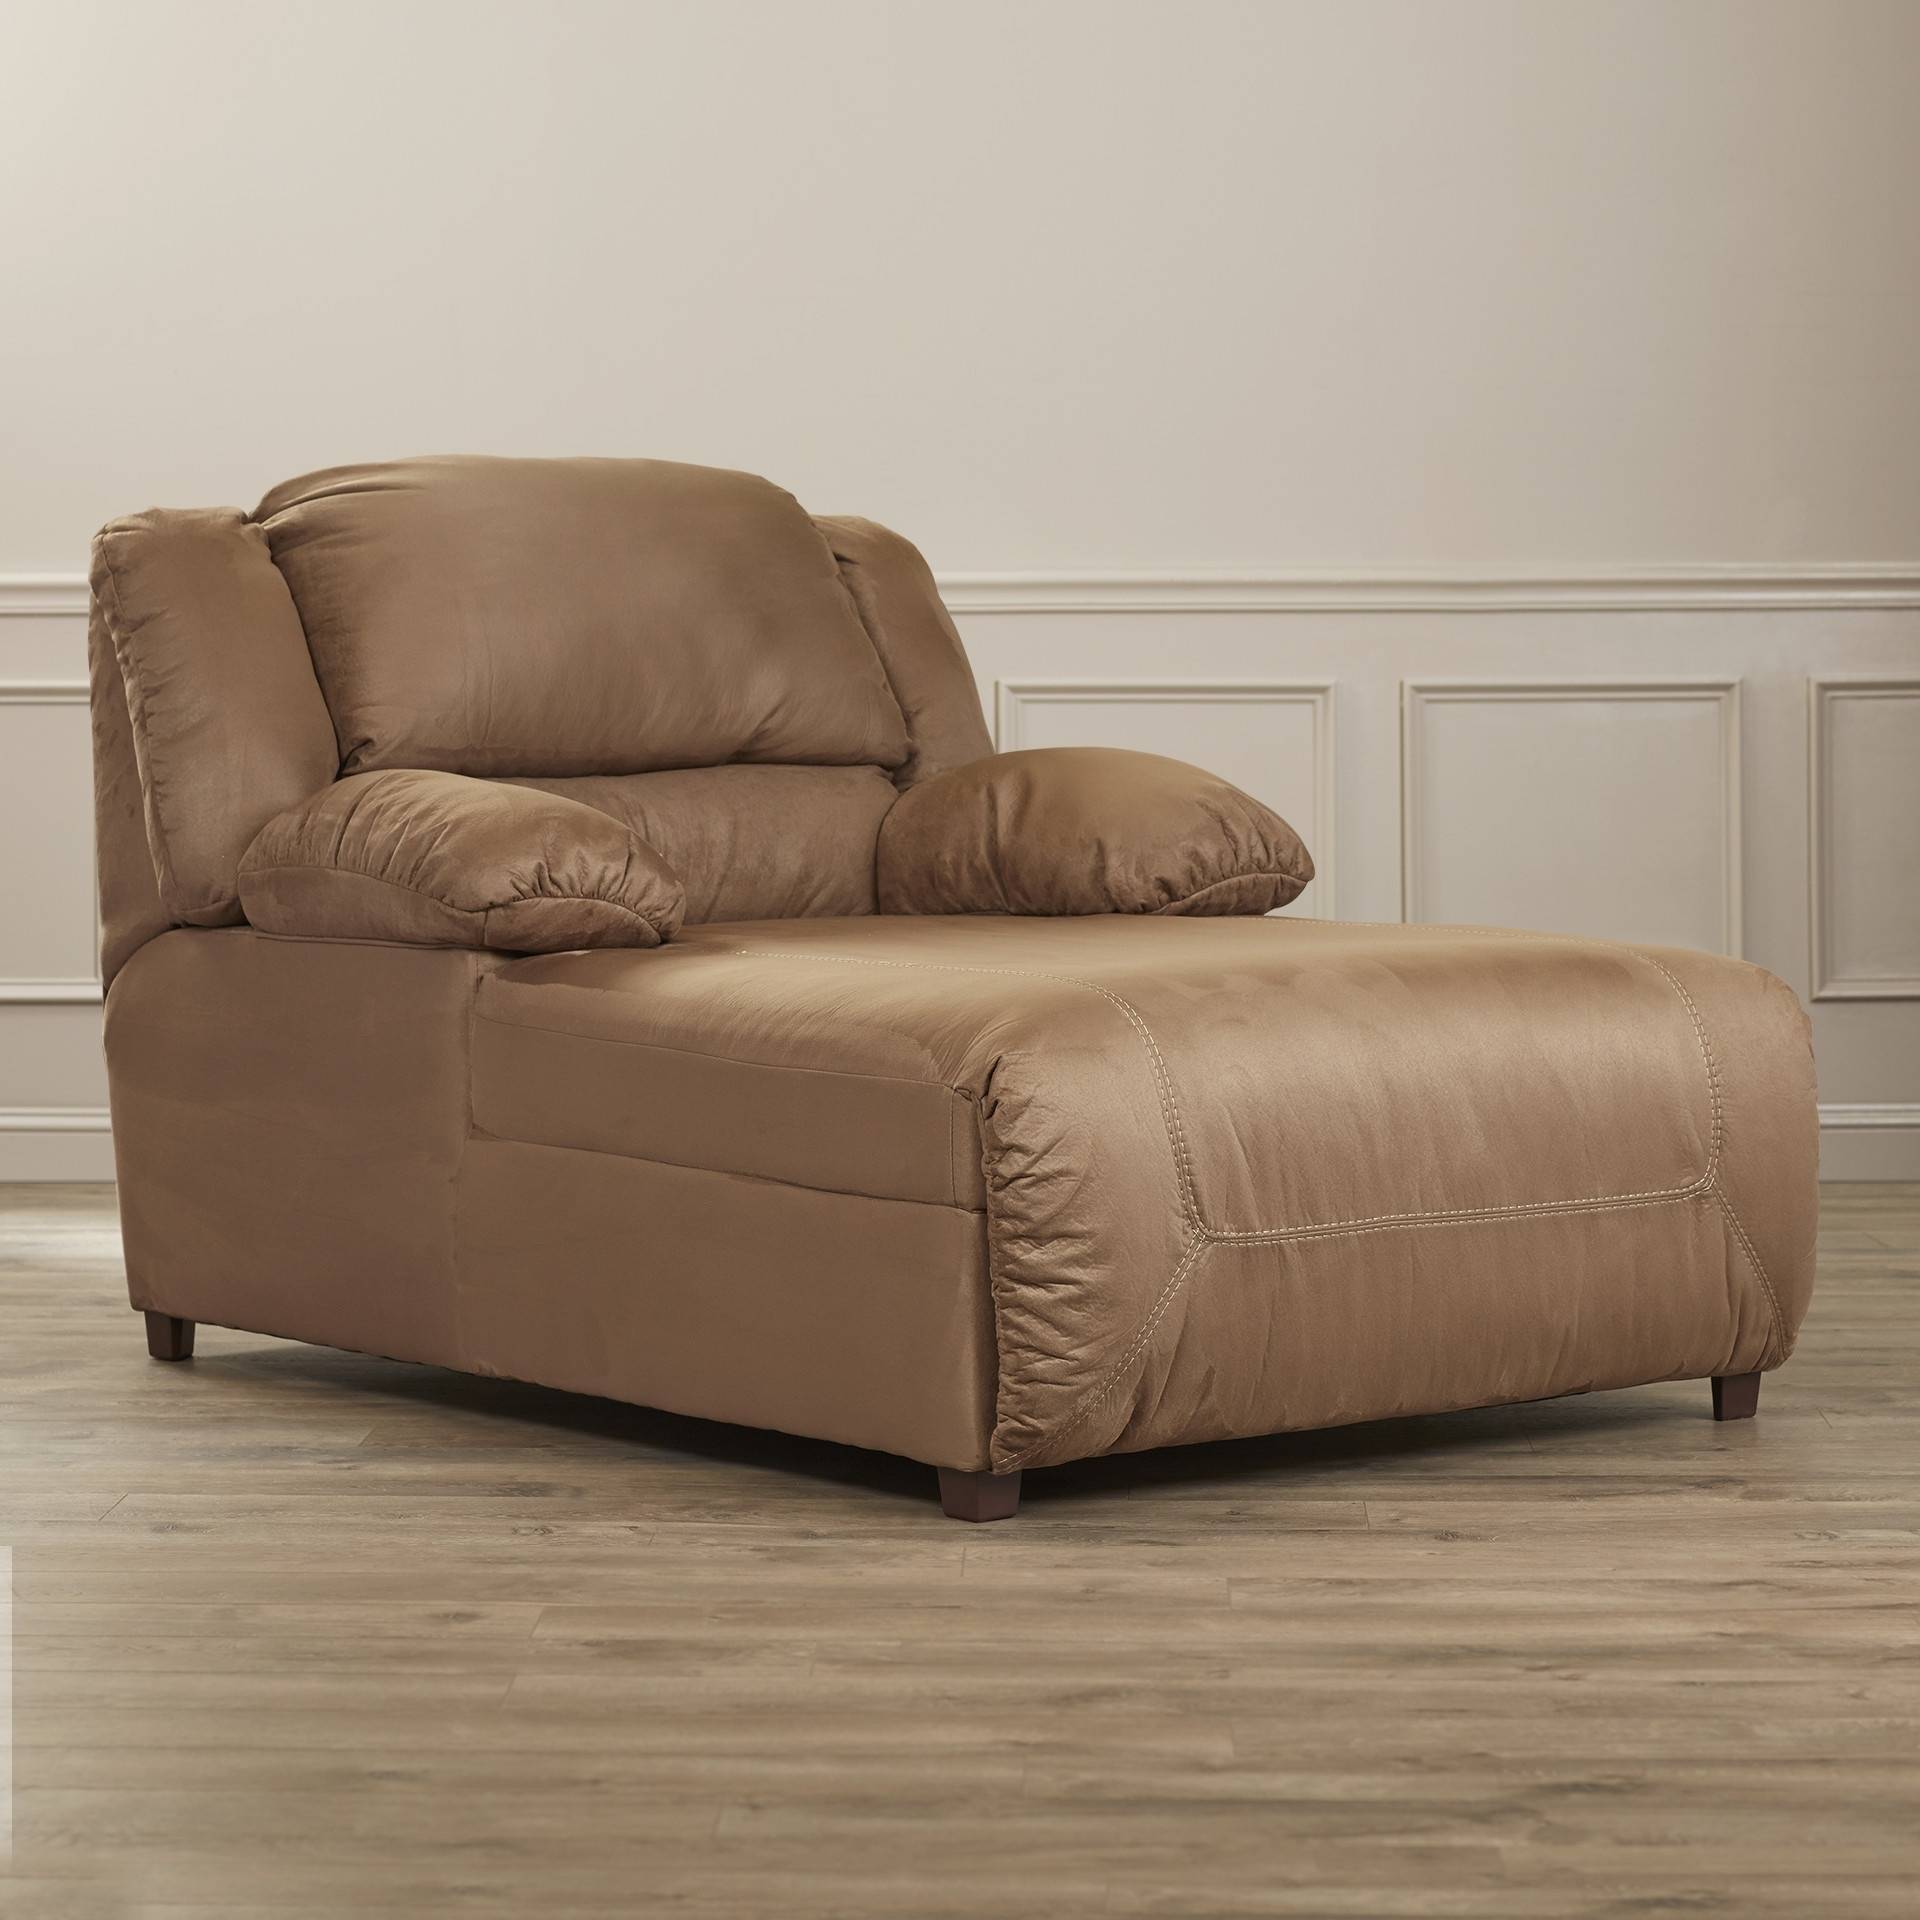 Reclining Chaise Lounges Regarding Well Known Reclining Chaise Lounge Chair Indoor – Modern Chairs Quality (View 11 of 15)